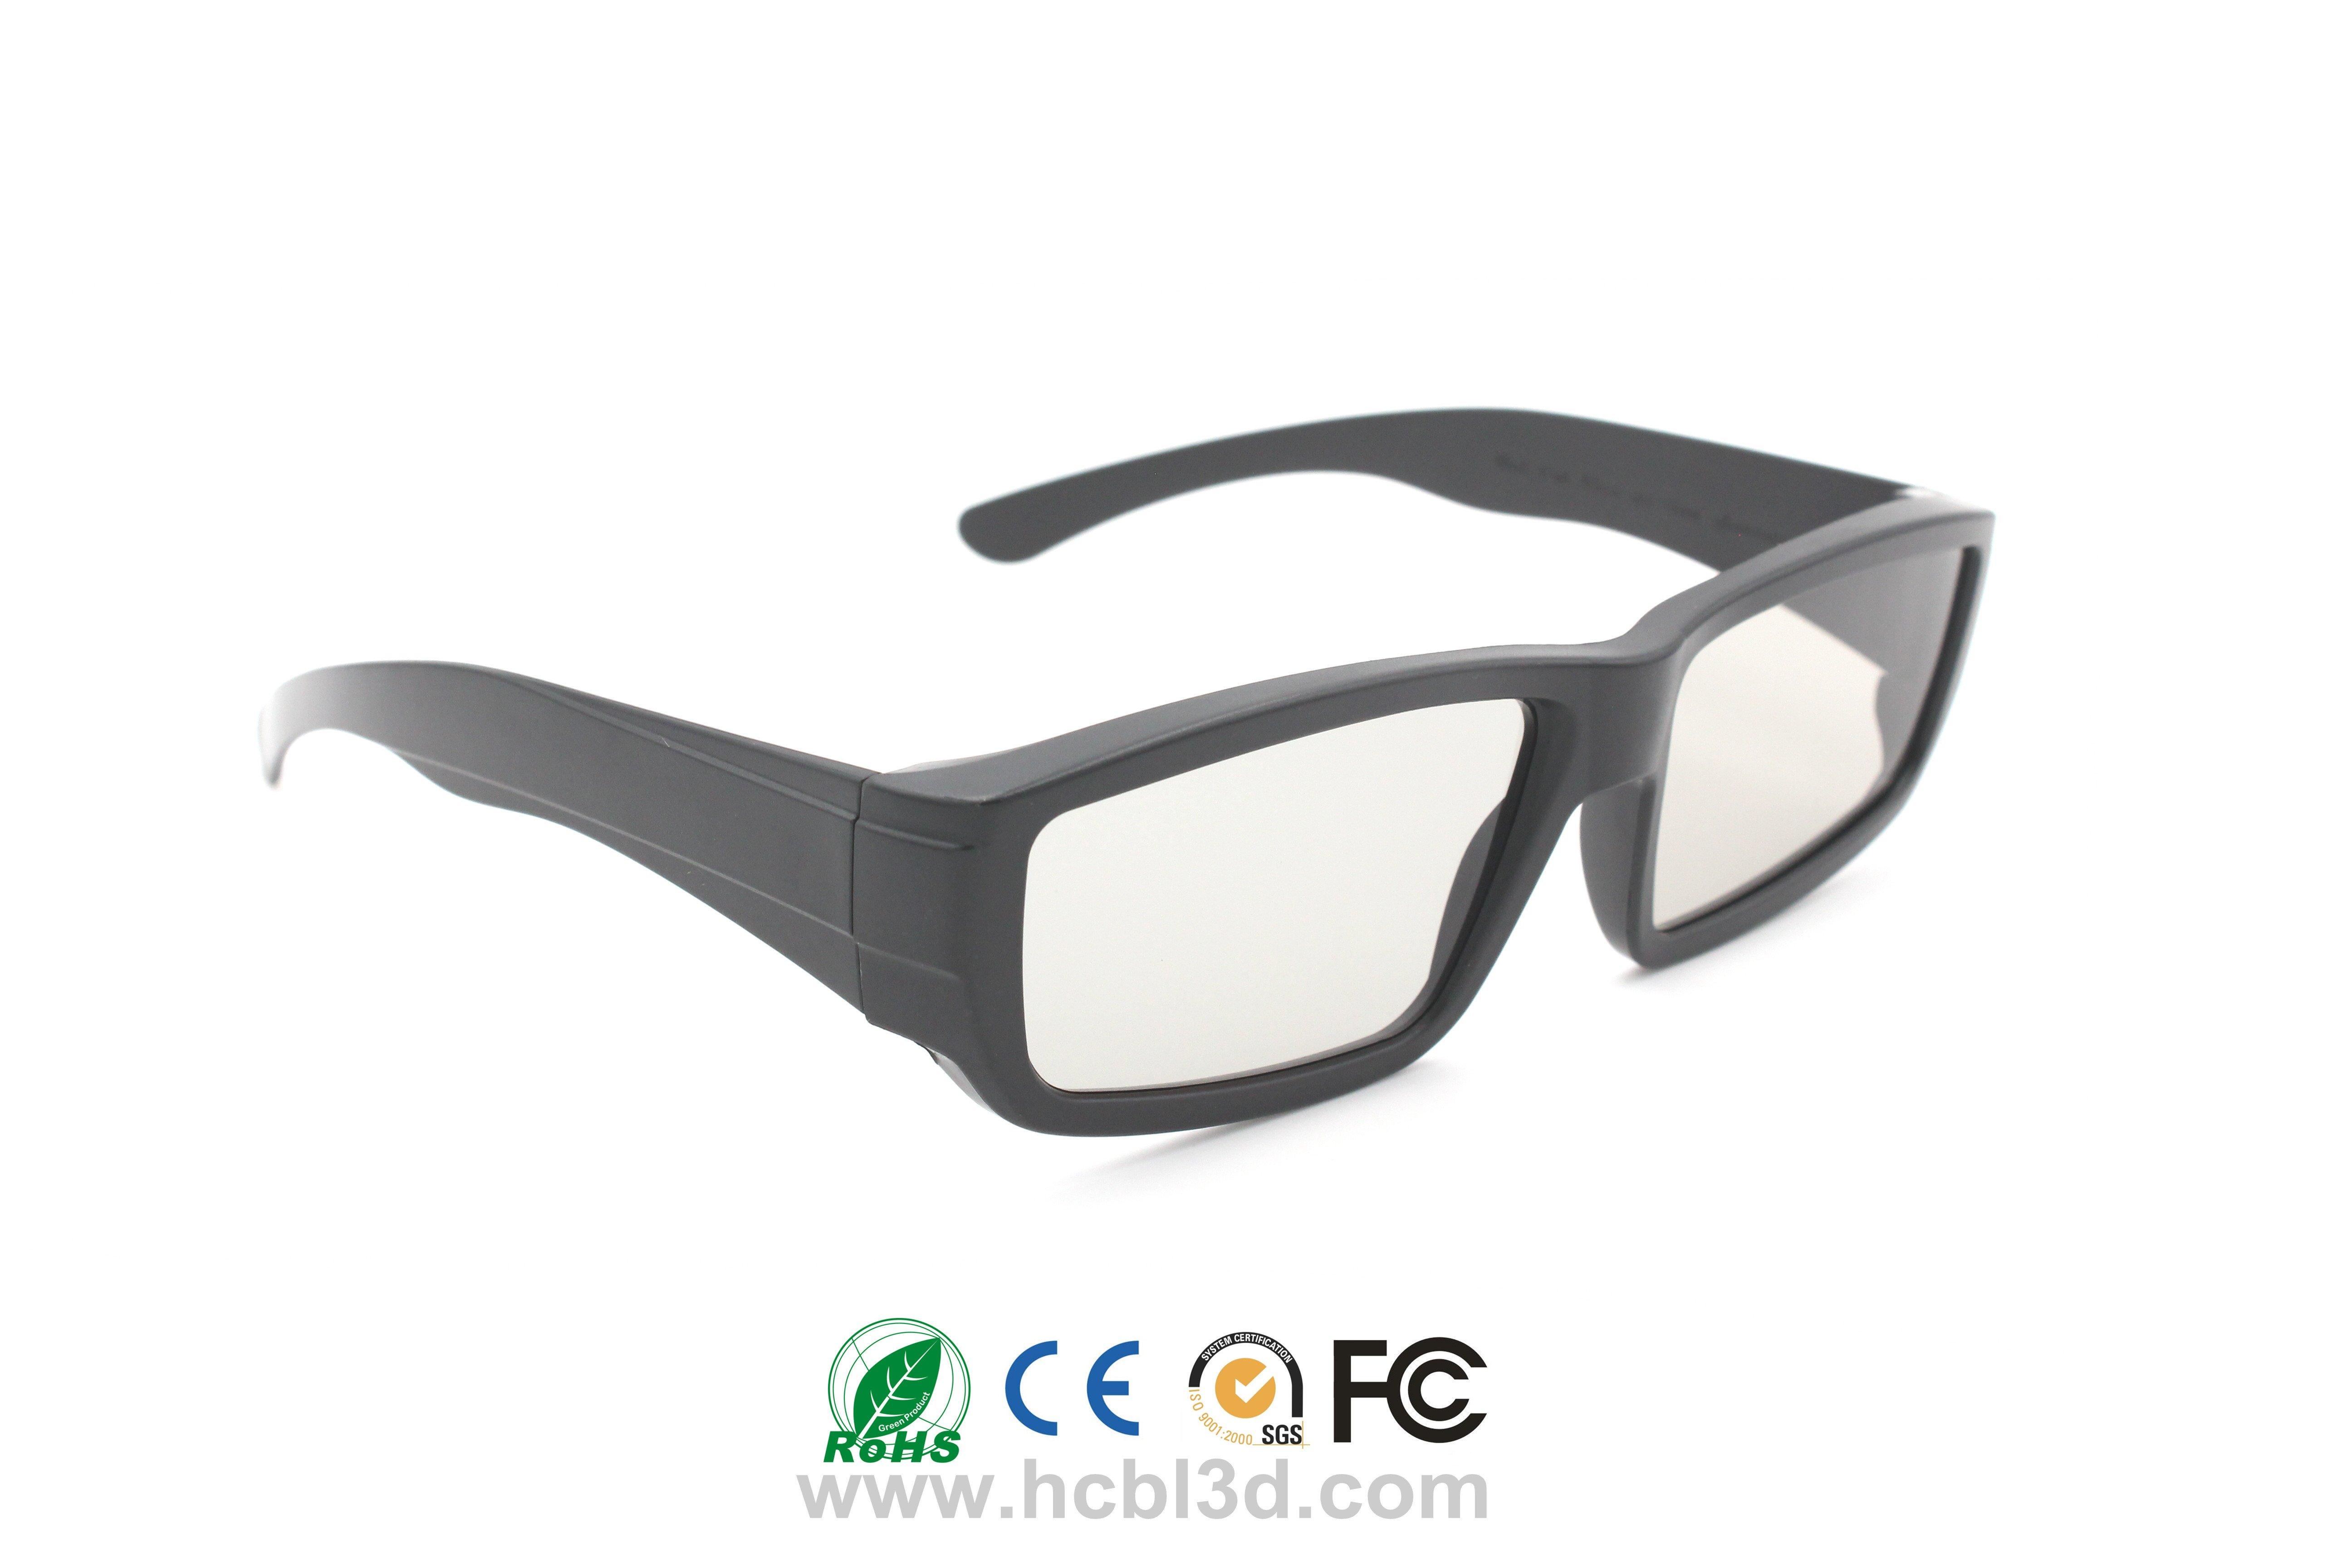 Passive 3D Glasses Plastic Frame for big screen format